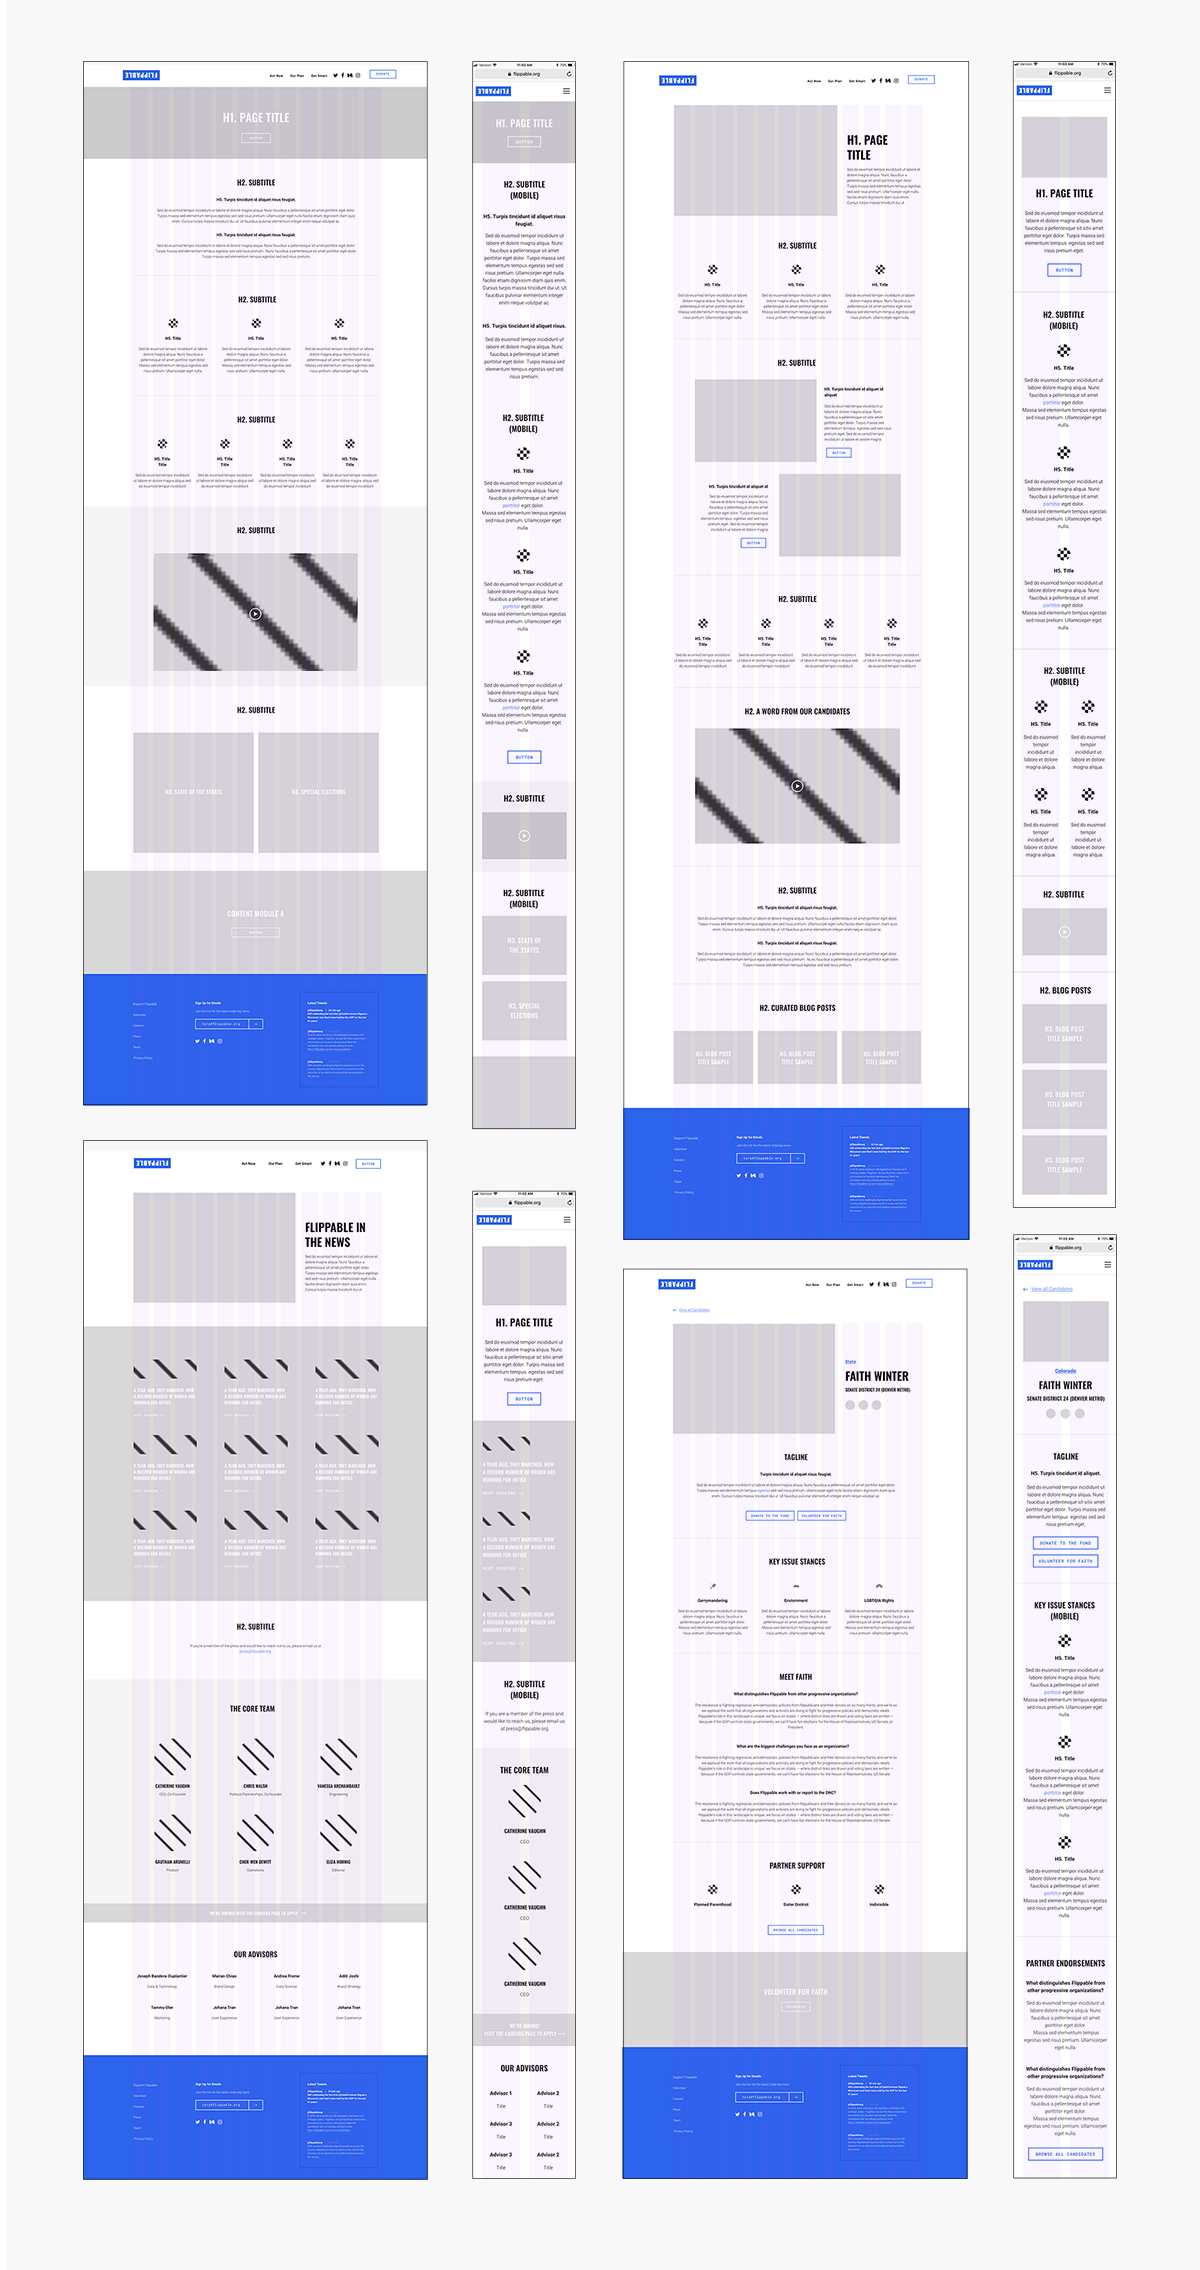 Templates_Grid